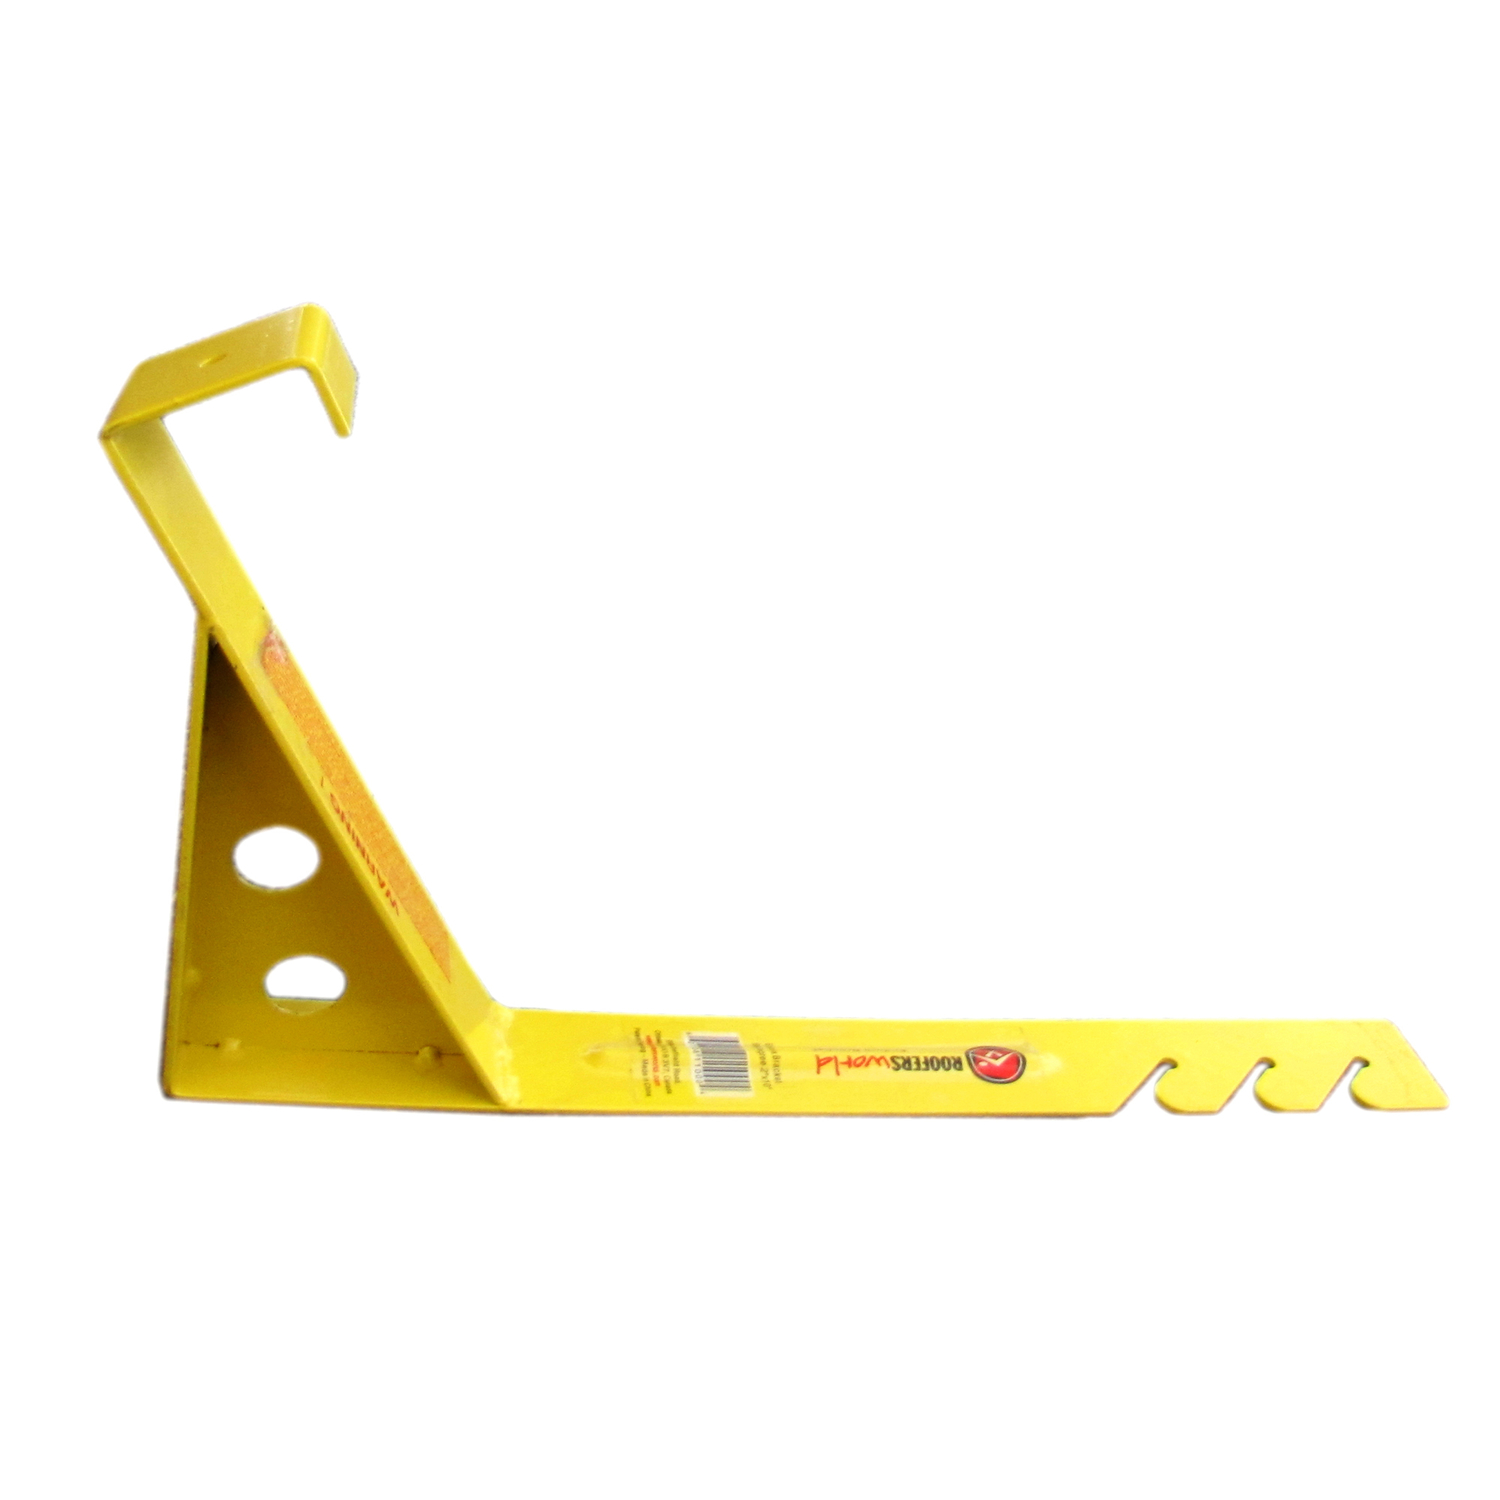 Roofers World  Endura Bracket  Steel  Yellow  Roof Bracket  1 pk